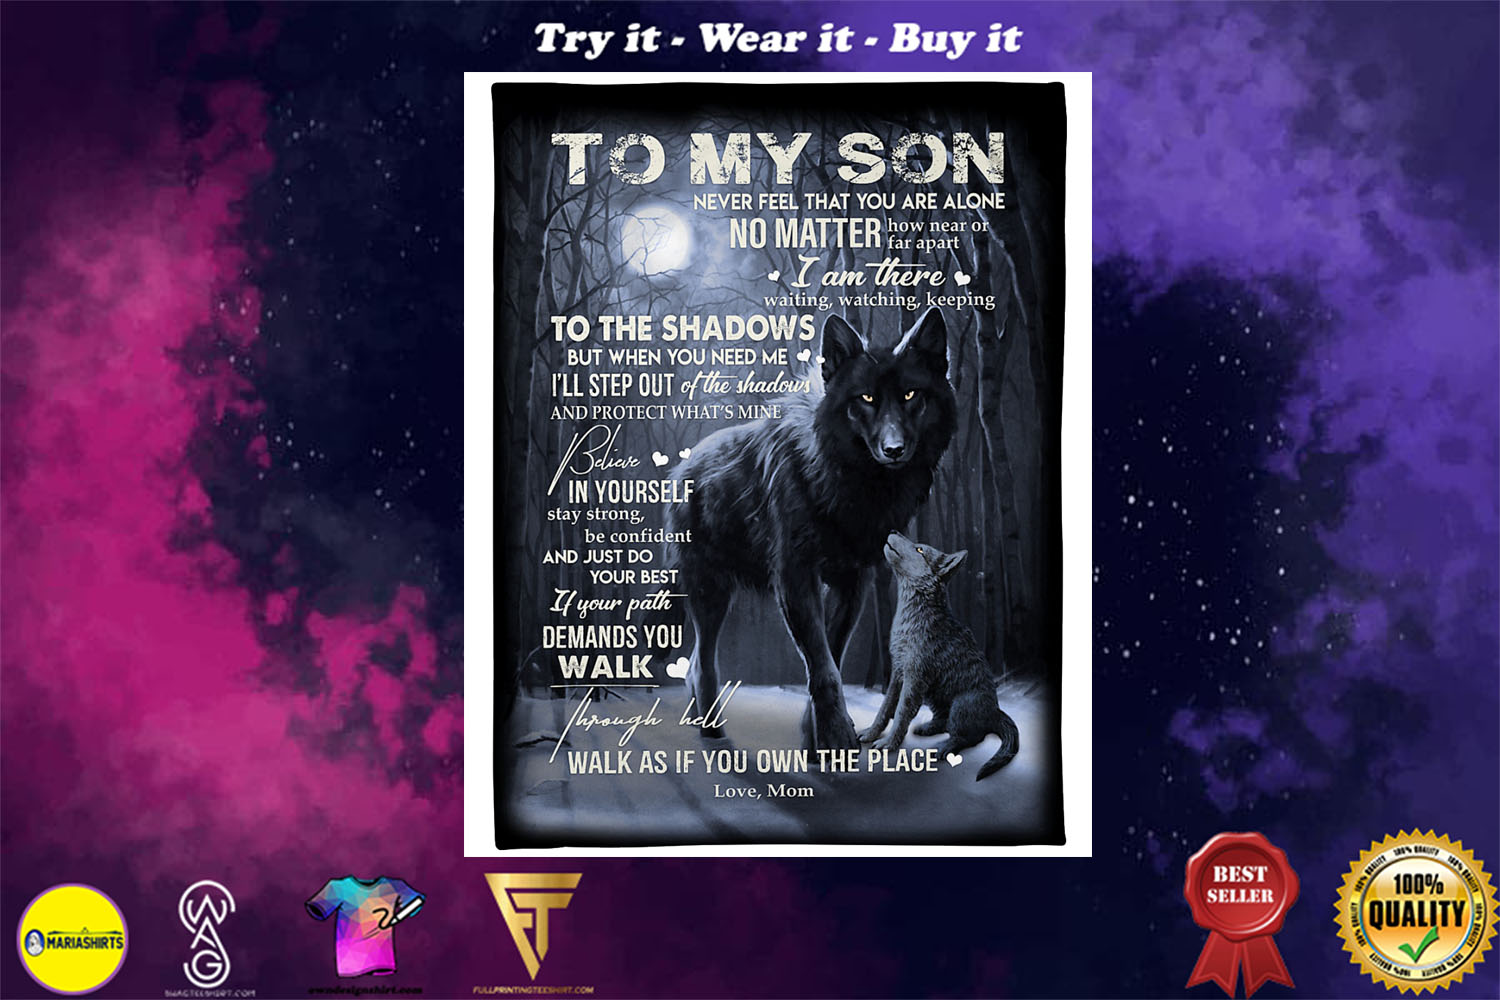 [special edition] wolf to my son walk as if you own the place love mom blanket - maria